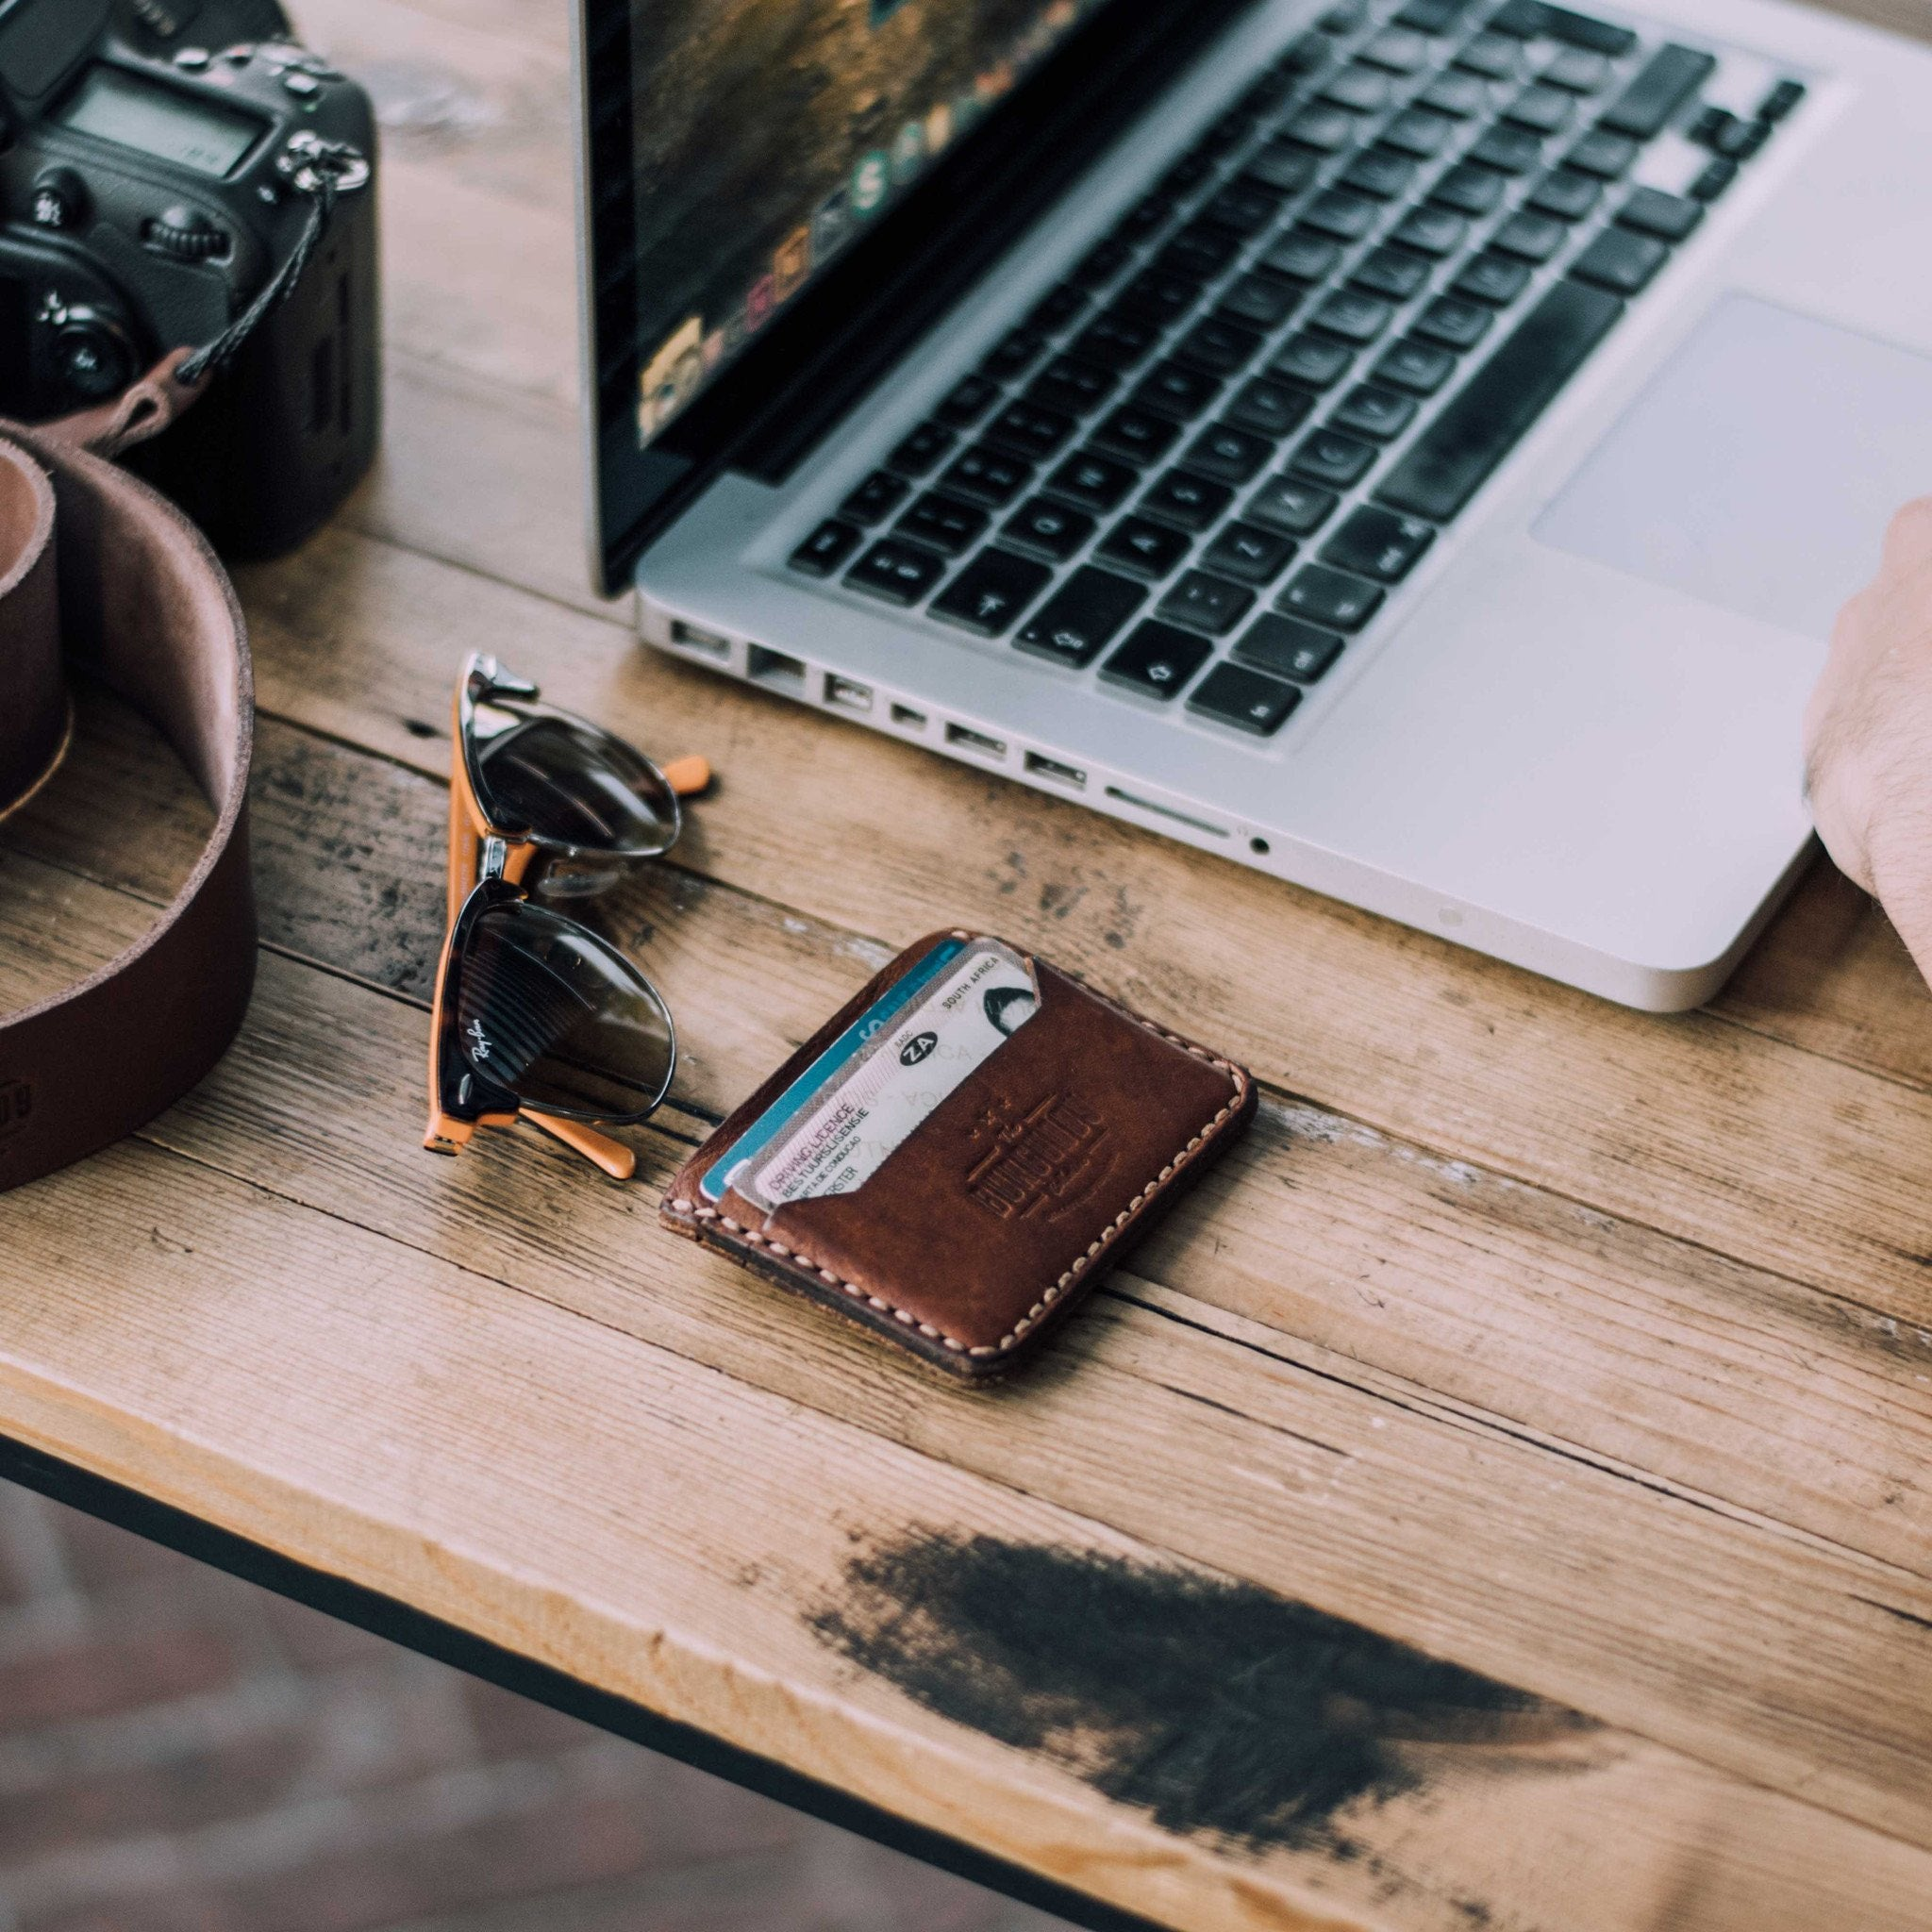 Products Burgundy Collective Digital Canvas Chocolate Leather Mens Minimalist Wallet Made In Stellenbosch South Africa Trendy Quality Lifestyle